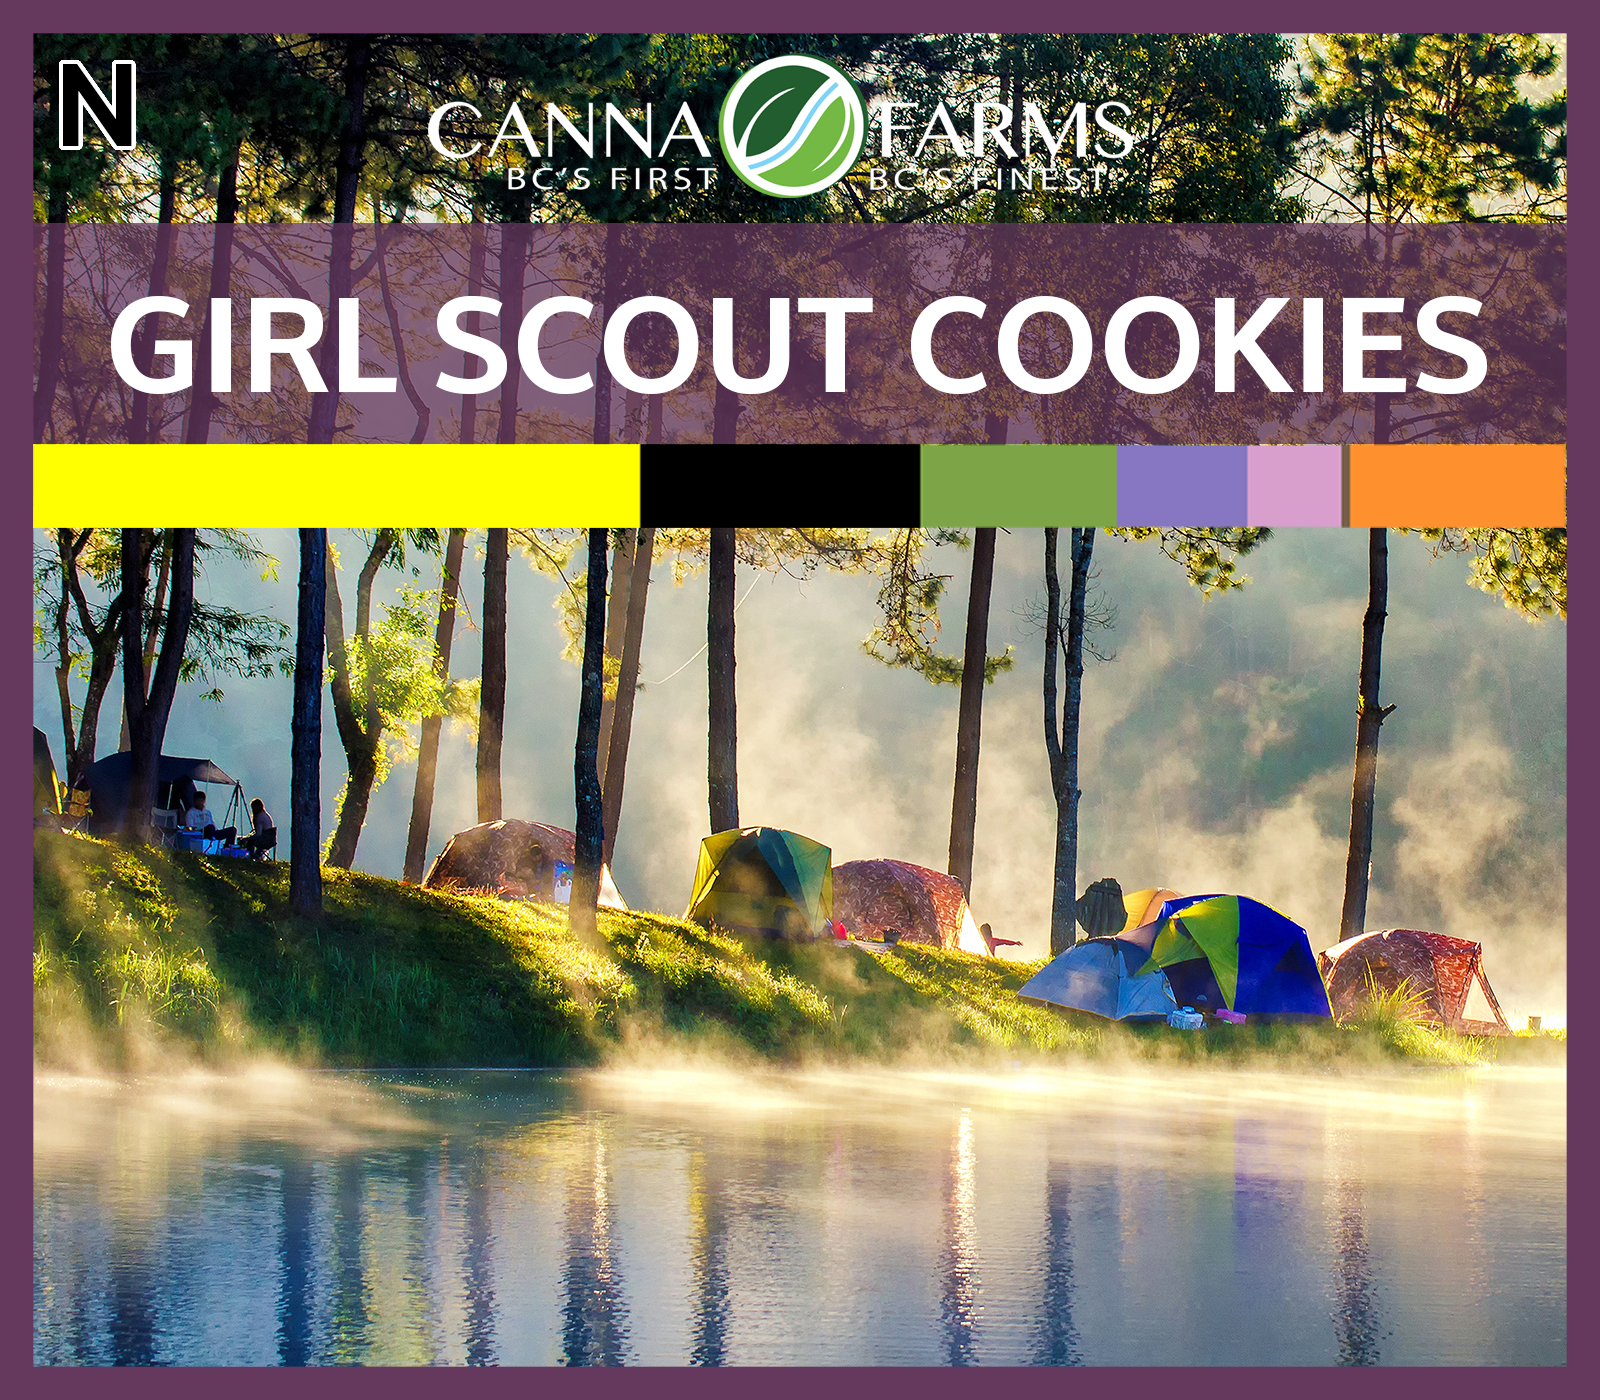 CF-GIRL SCOUT COOKIES.jpg